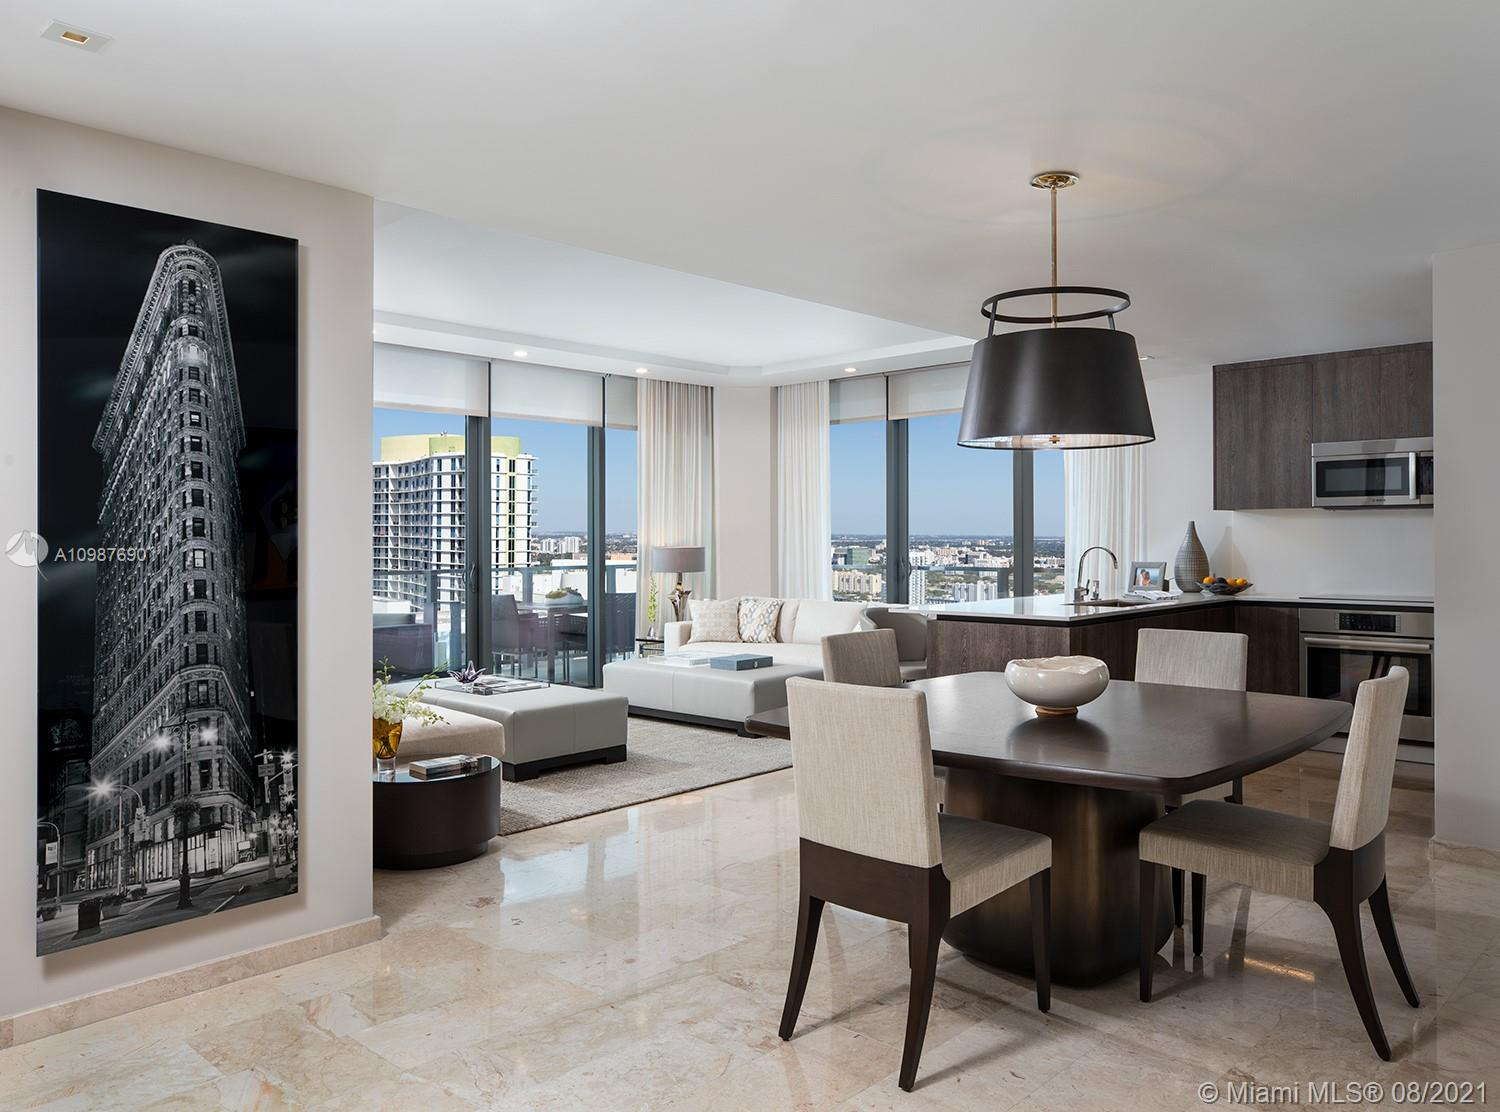 A modern and stylish three-bedroom residence in Rise Brickell City Centre, designed by the internationally acclaimed Arquitectonica. The interiors were designed by renowned Richardson Sadeki and feature floor-to-ceiling windows, meticulously crafted interiors, a modern kitchen with premium appliances, a terrace with glass and aluminum railings and simply breathtaking views of the Brickell skyline. Resort-like amenities include a spacious, state-of-the-art fitness center, tropical garden, barbecue grills, library, children's play area, a heated social pool with spa, on-premises concierge and assigned parking for all units in a secured garage. Vibrant urban style living conveniently located with an exclusive shopping center, restaurants, and entertainment moments away.